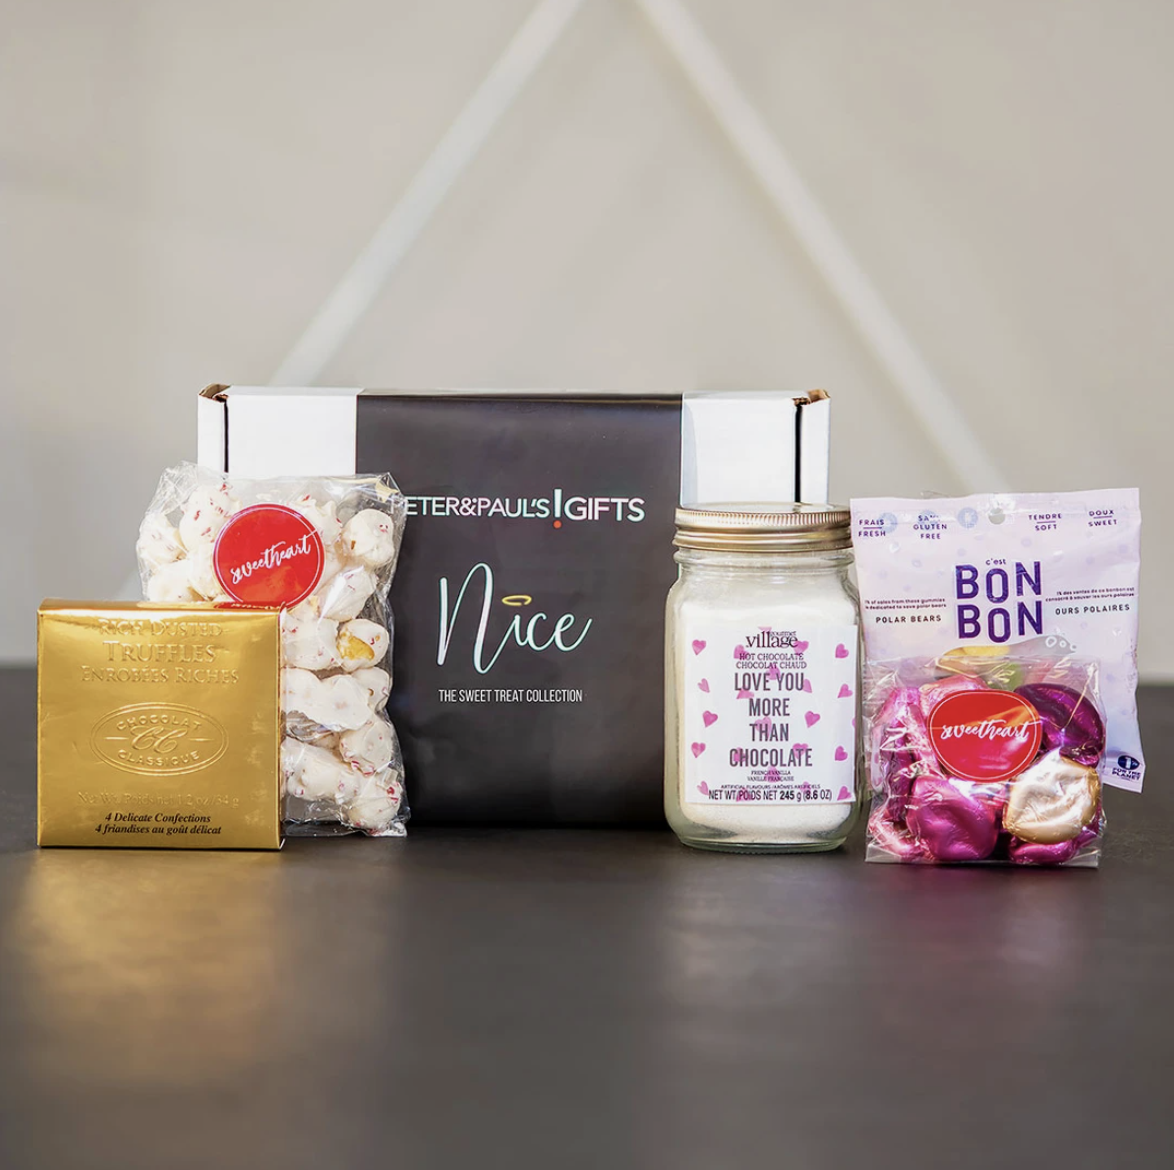 Peter & Paul's Gifts: Nice Sweet Treat Collection